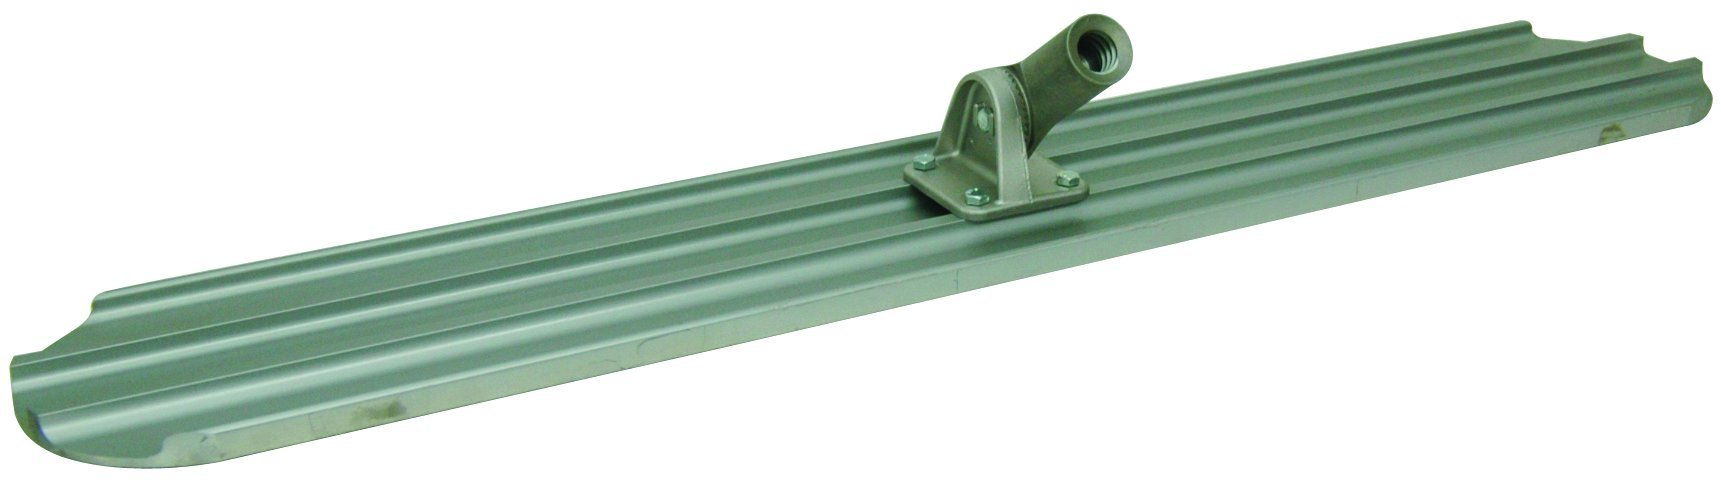 QLT By MARSHALLTOWN MB48R 48-Inch by 8-Inch Round End Magnesium Bull Float